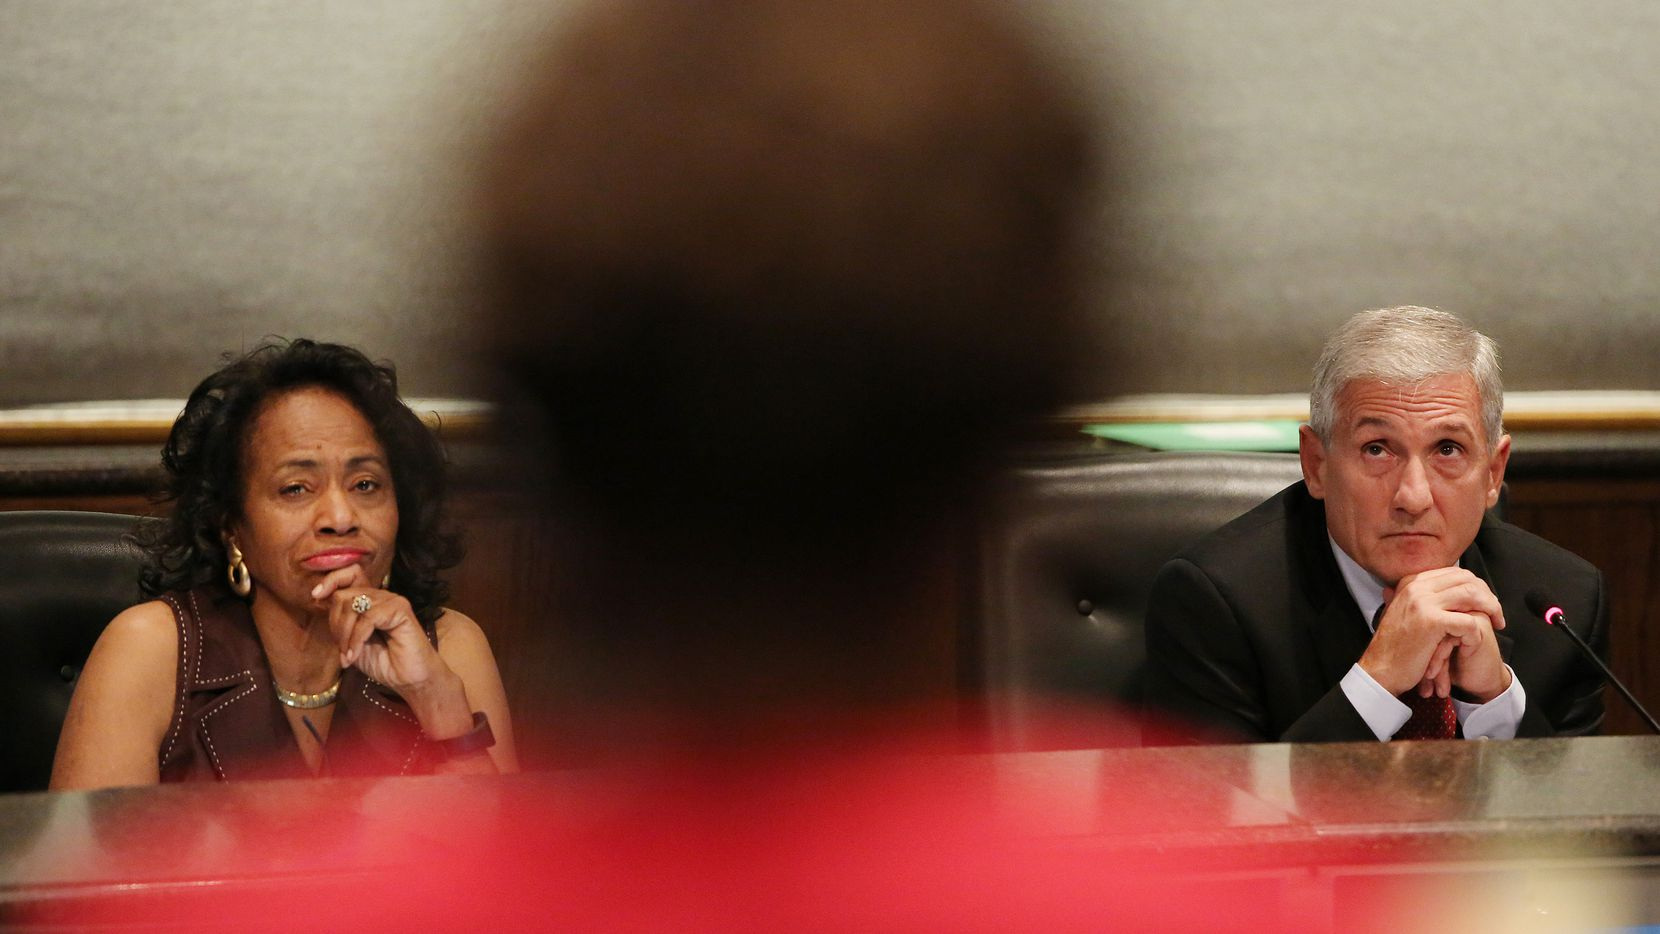 Trustee Joyce Foreman and board president Dan Micciche listen during a public hearing and board meeting of the Dallas Independent School District at the Dallas ISD headquarters in Dallas Friday.